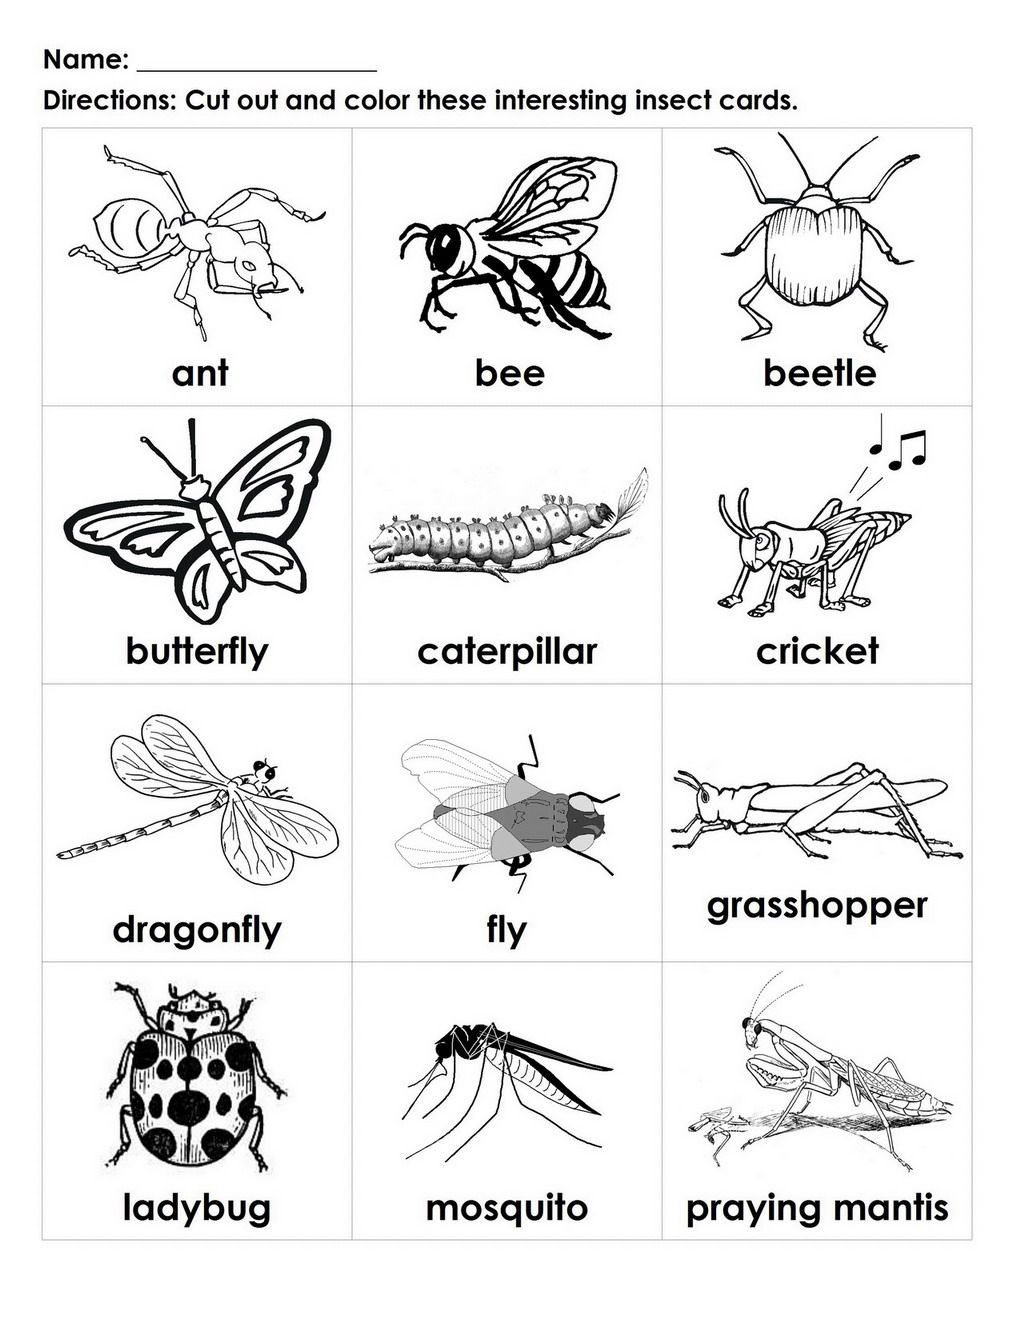 bugs for kids to color | ... Interesting Insects black-white cards ...